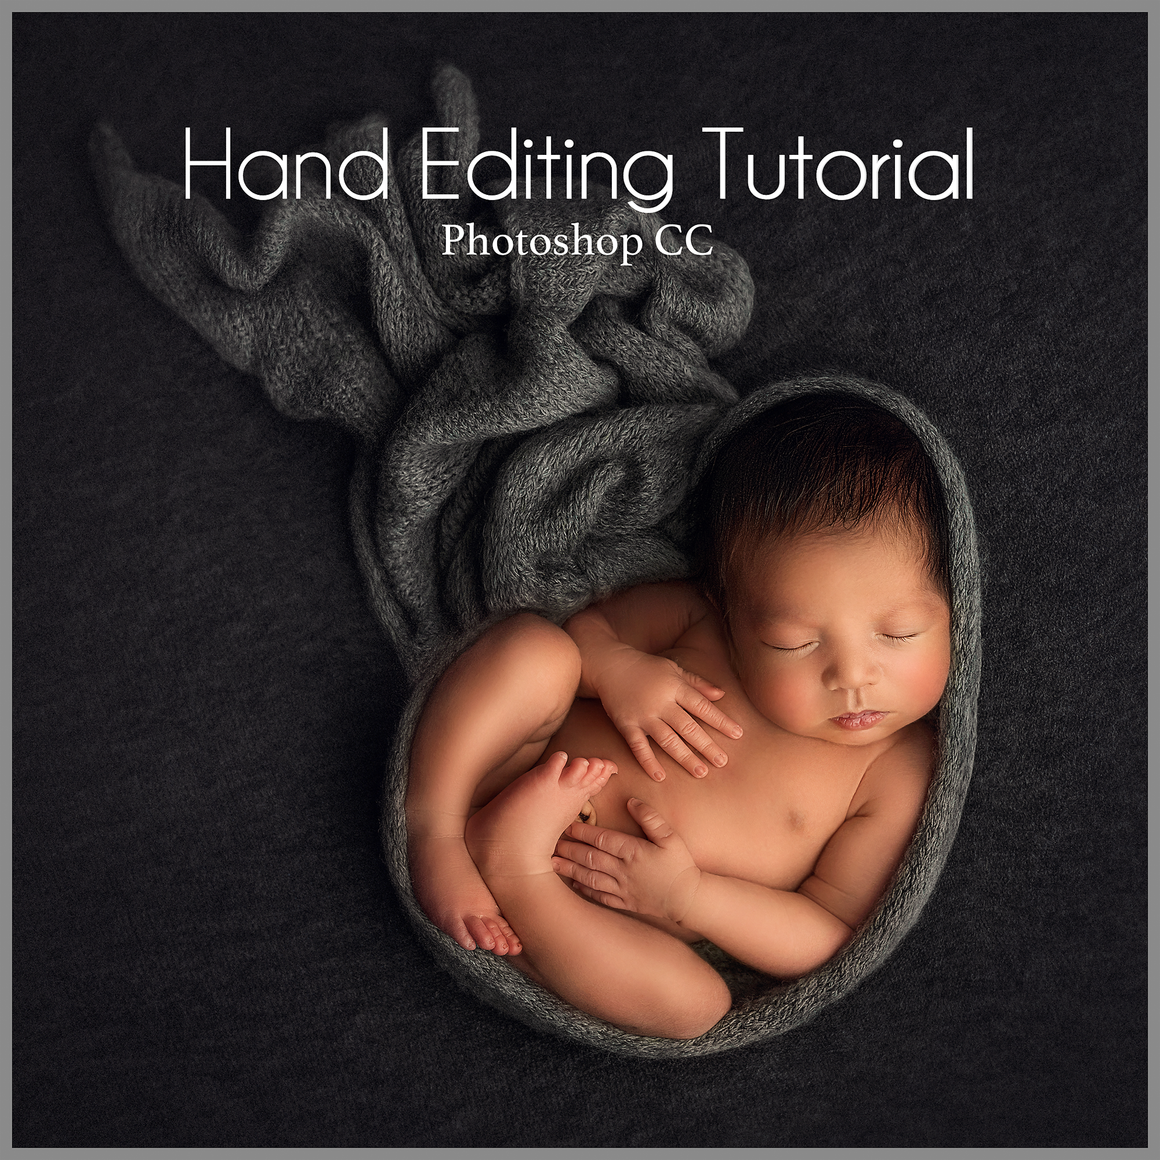 Grey on Beanbag Newborn Editing Tutorial | Photoshop Class - Dream Artsy Actions Tutorials